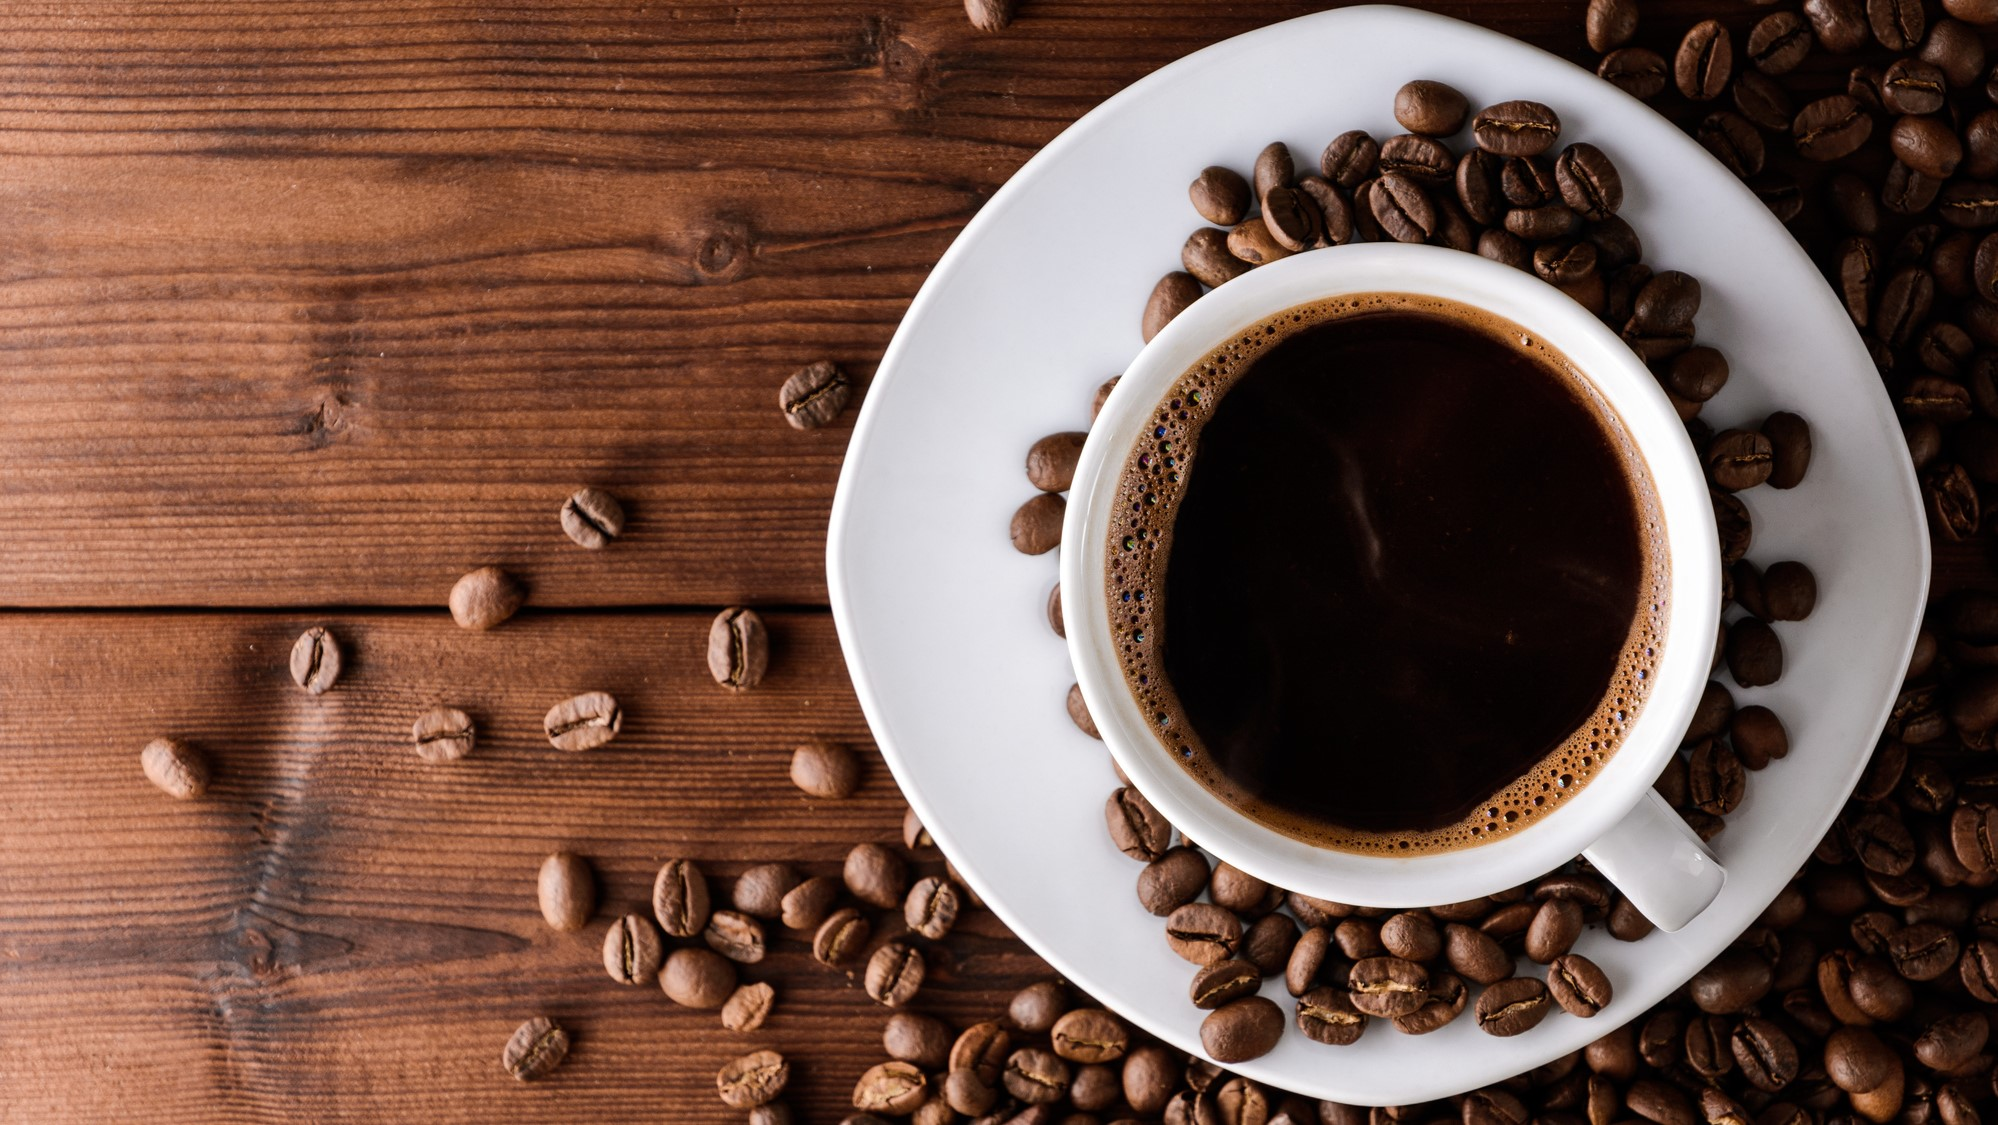 Caffeine found in coffee helps lose weight